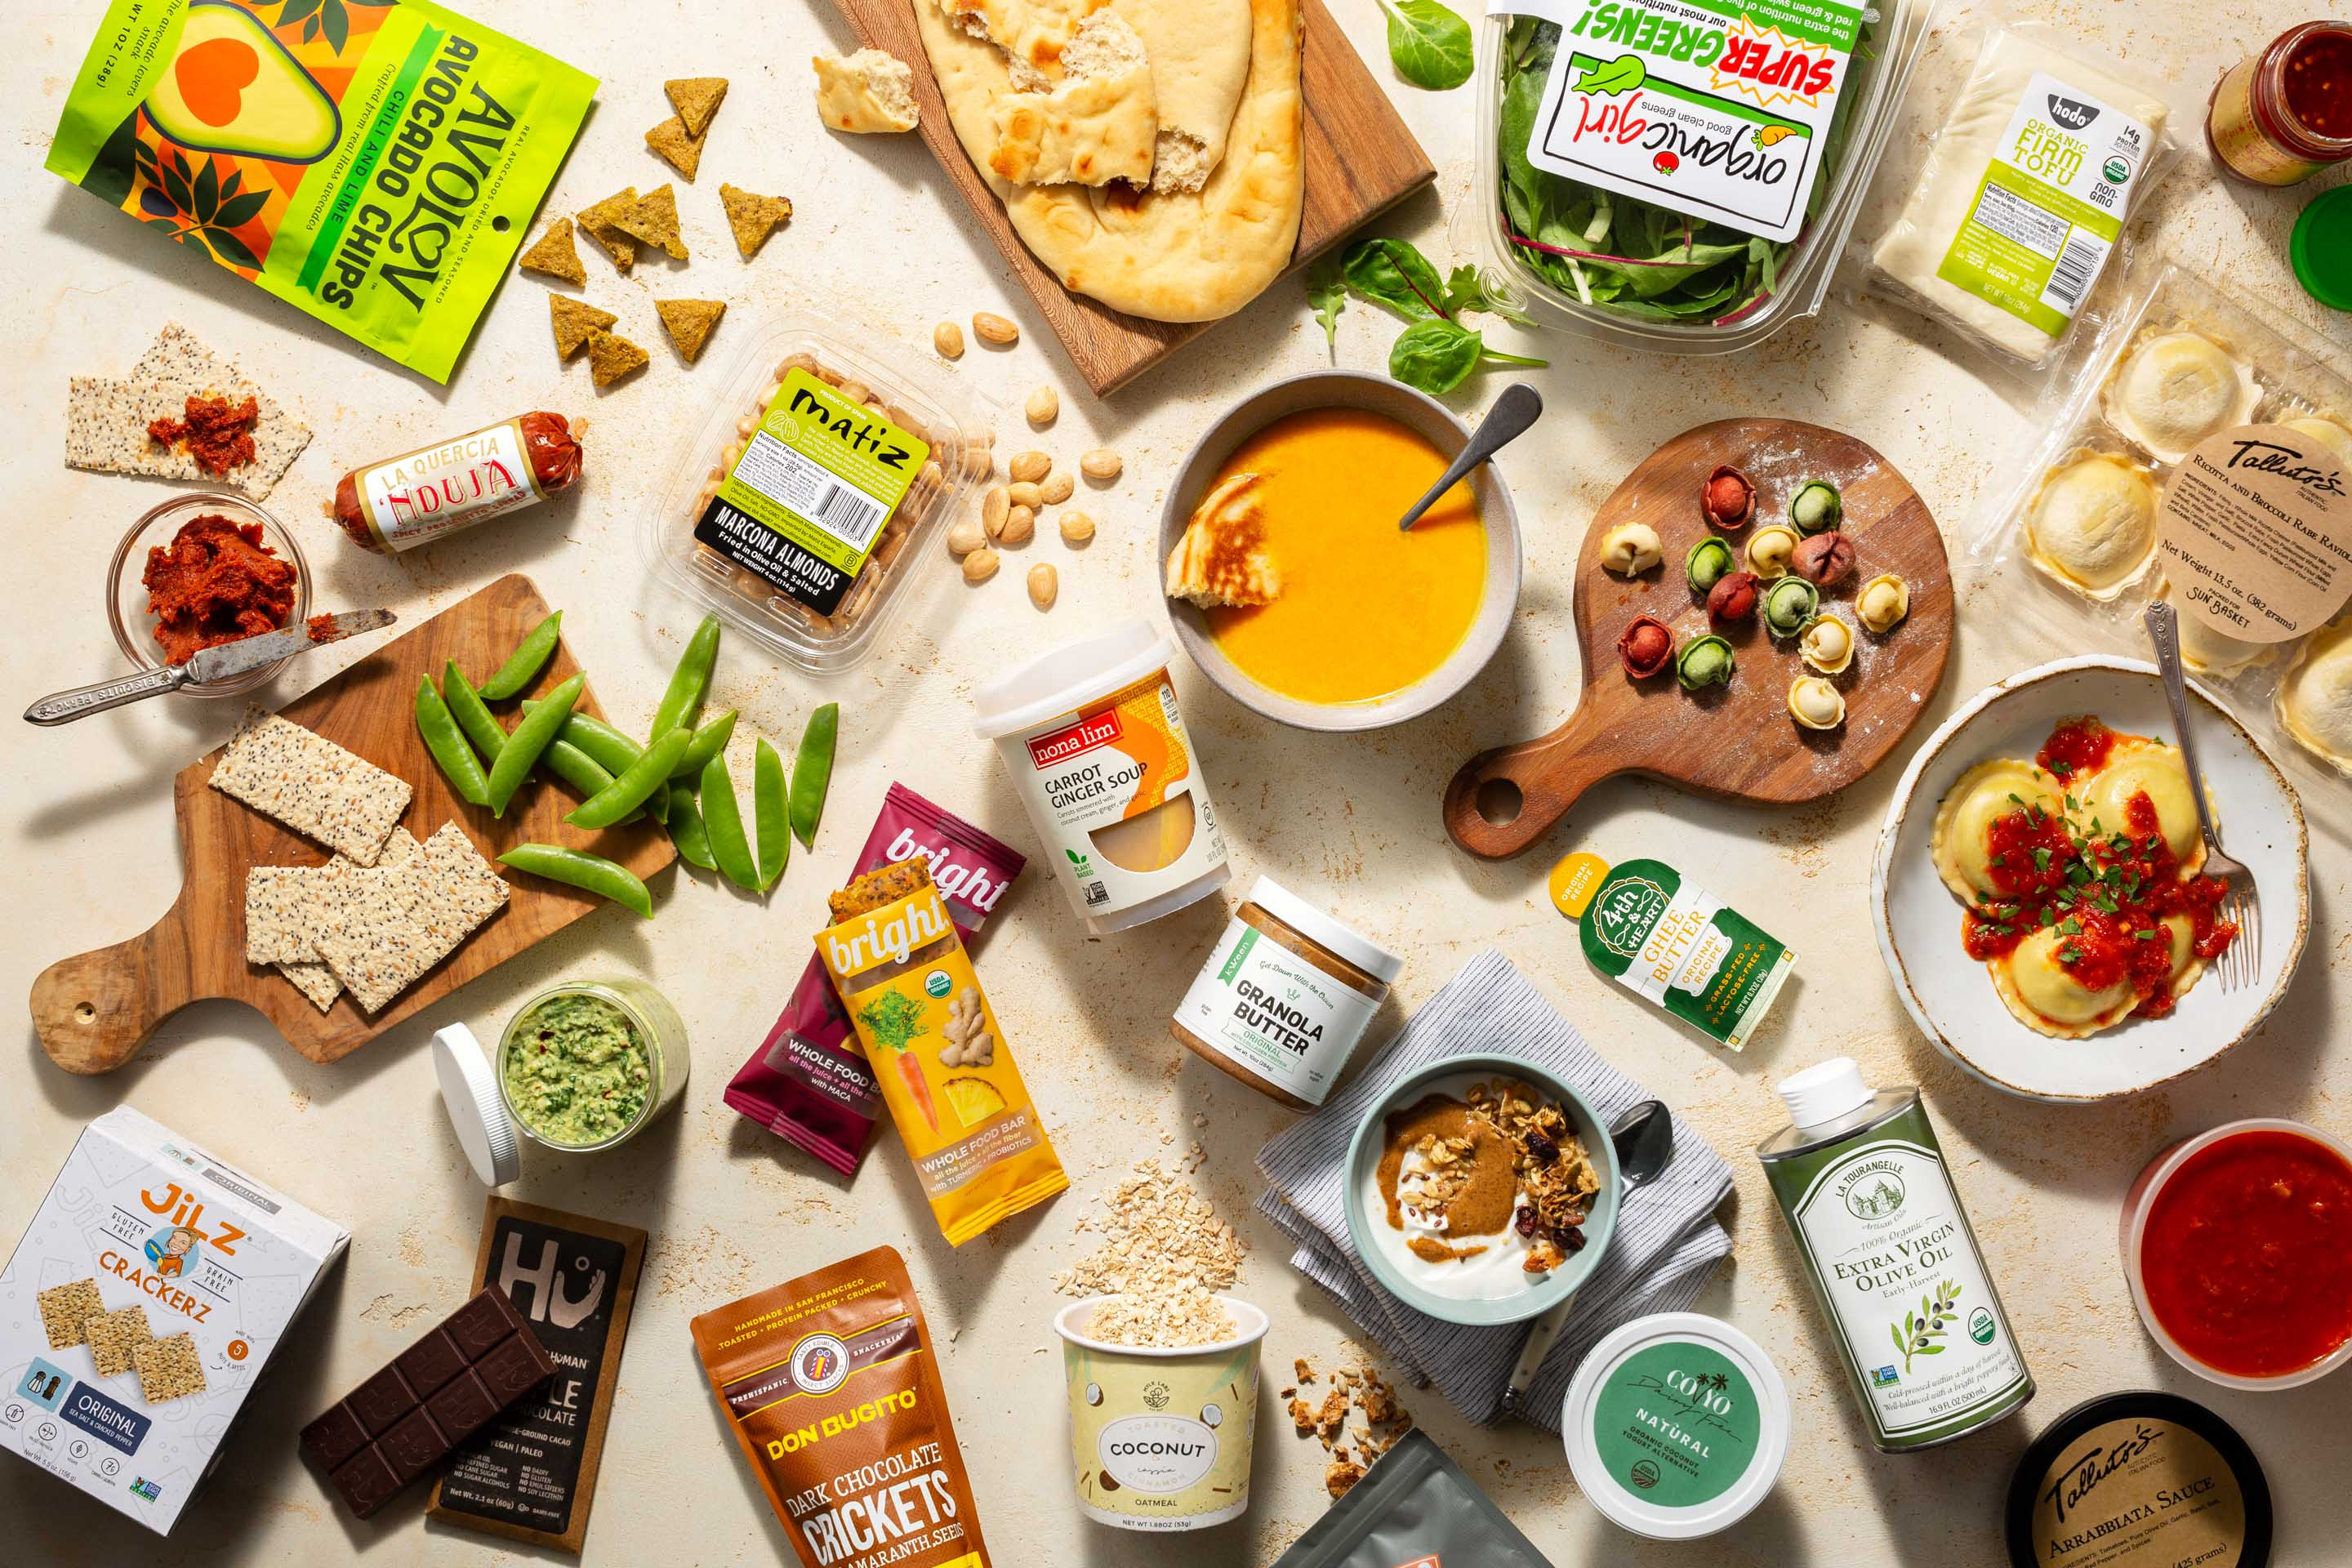 Sun Basket's CEO on how COVID-19 has transformed the meal kit industry